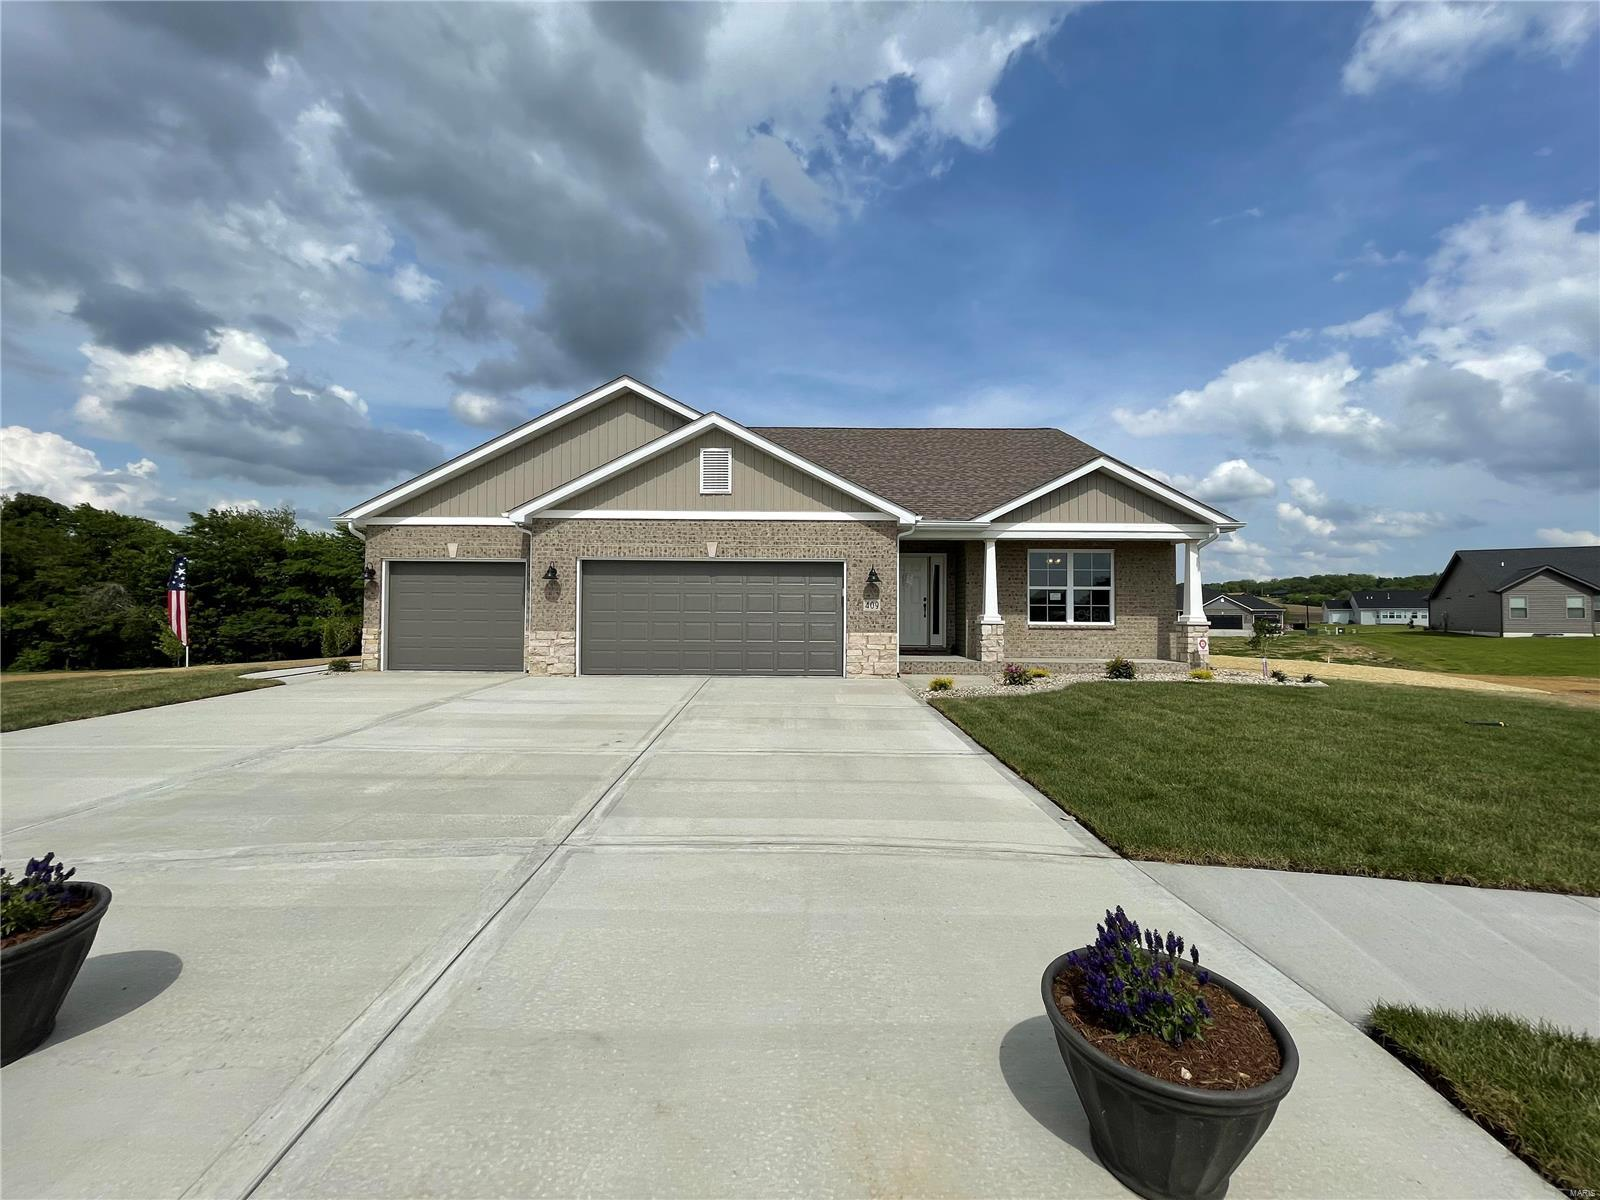 409 Briarberry Property Photo - Shiloh, IL real estate listing